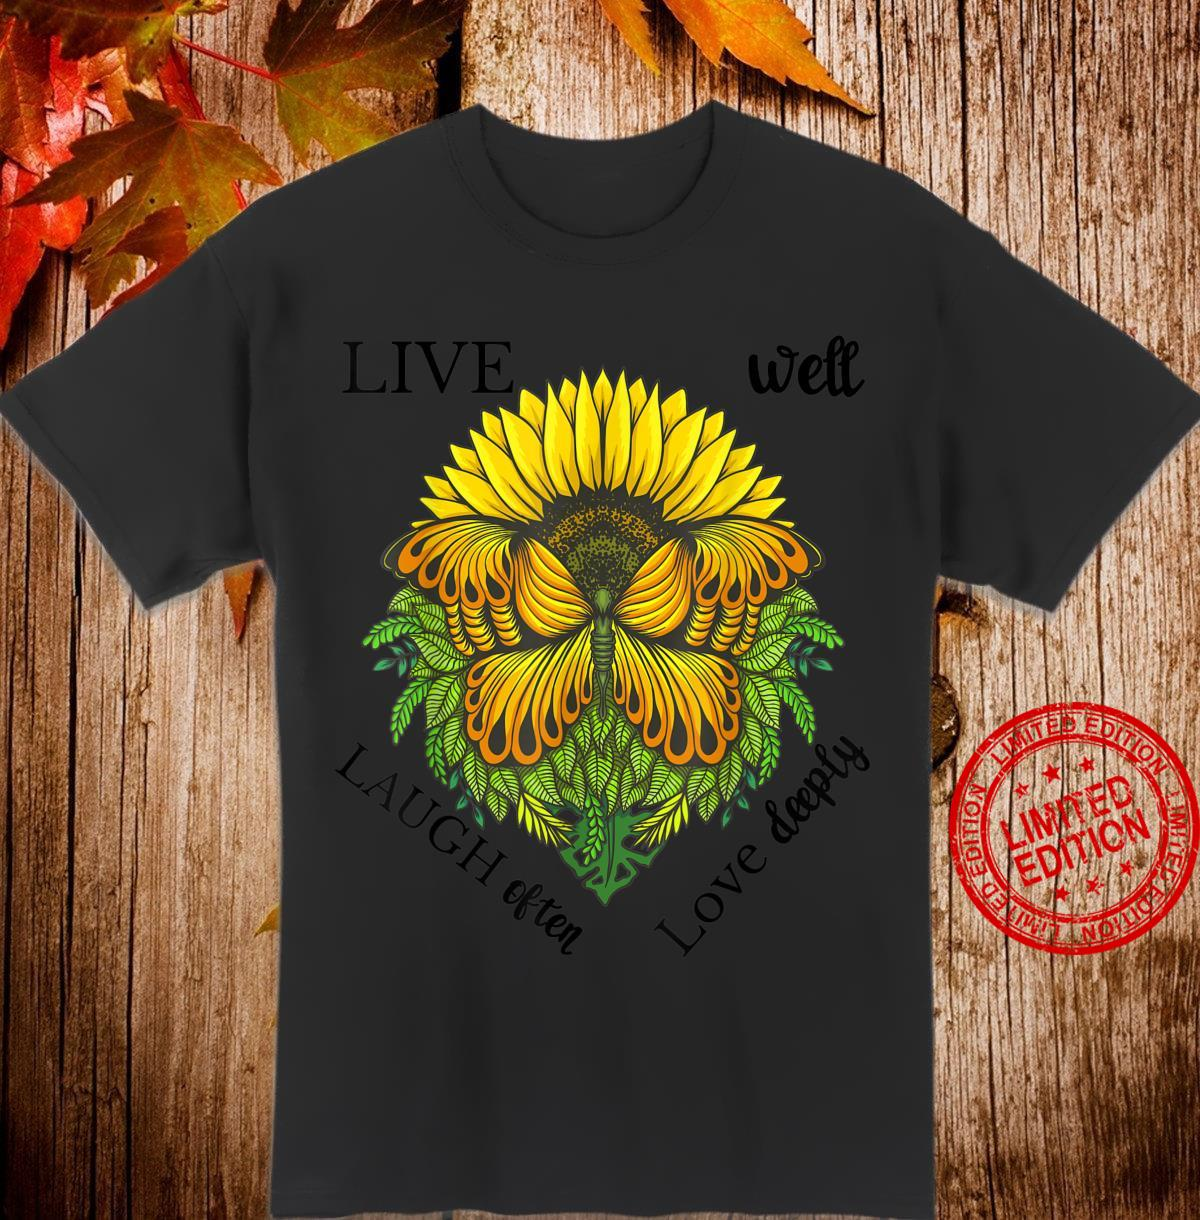 Sunflower Butterfly Shirt,Live Well Laugh Often Love Deeply Shirt